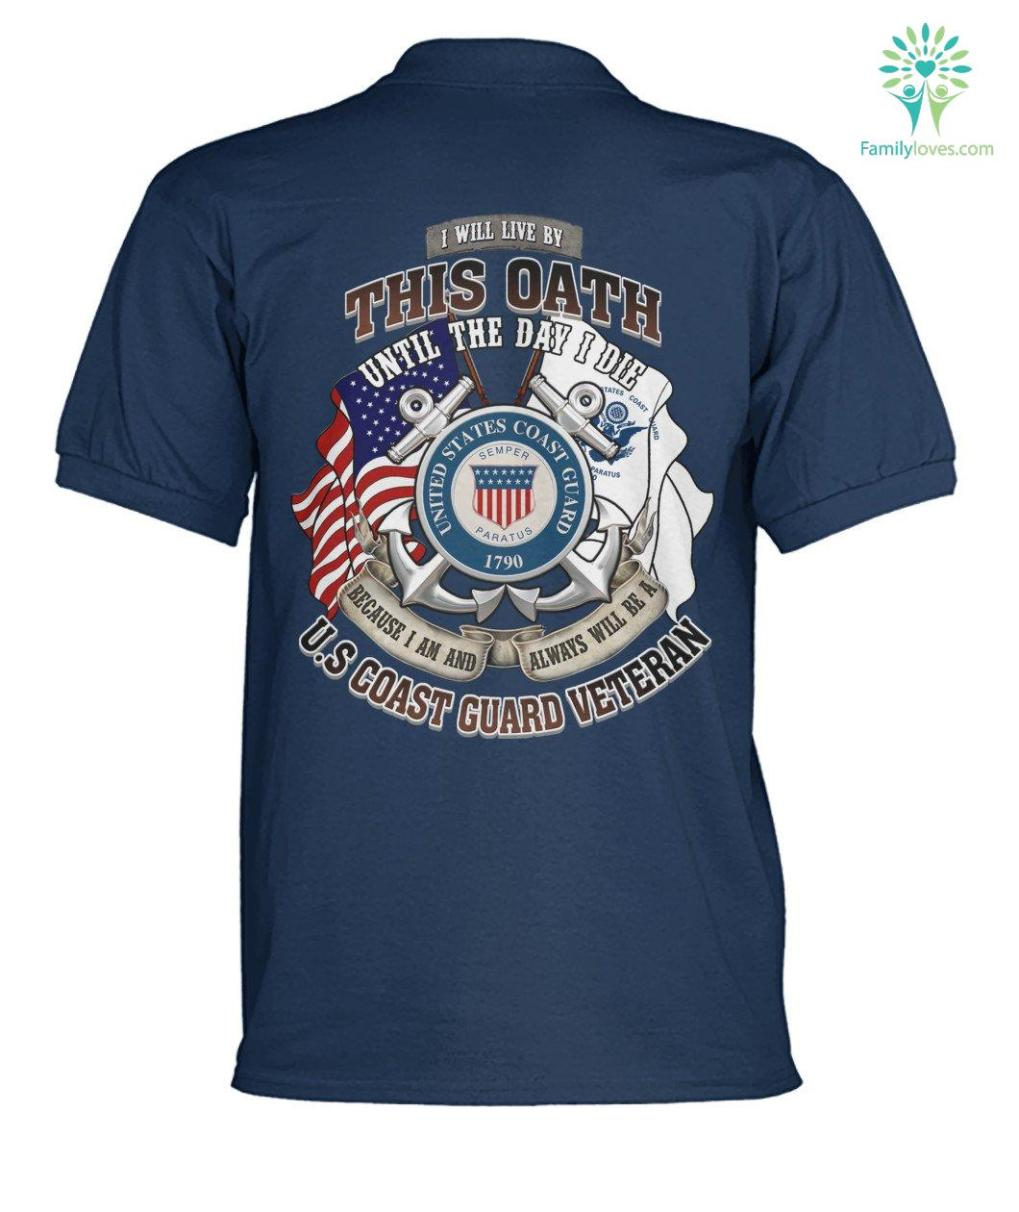 i-will-live_4eb67ff4-dfc1-333e-aa86-dca05701eeee I will live by this oath until the day I die... U.S Coast Guard veteran? men's polo shirt  %tag